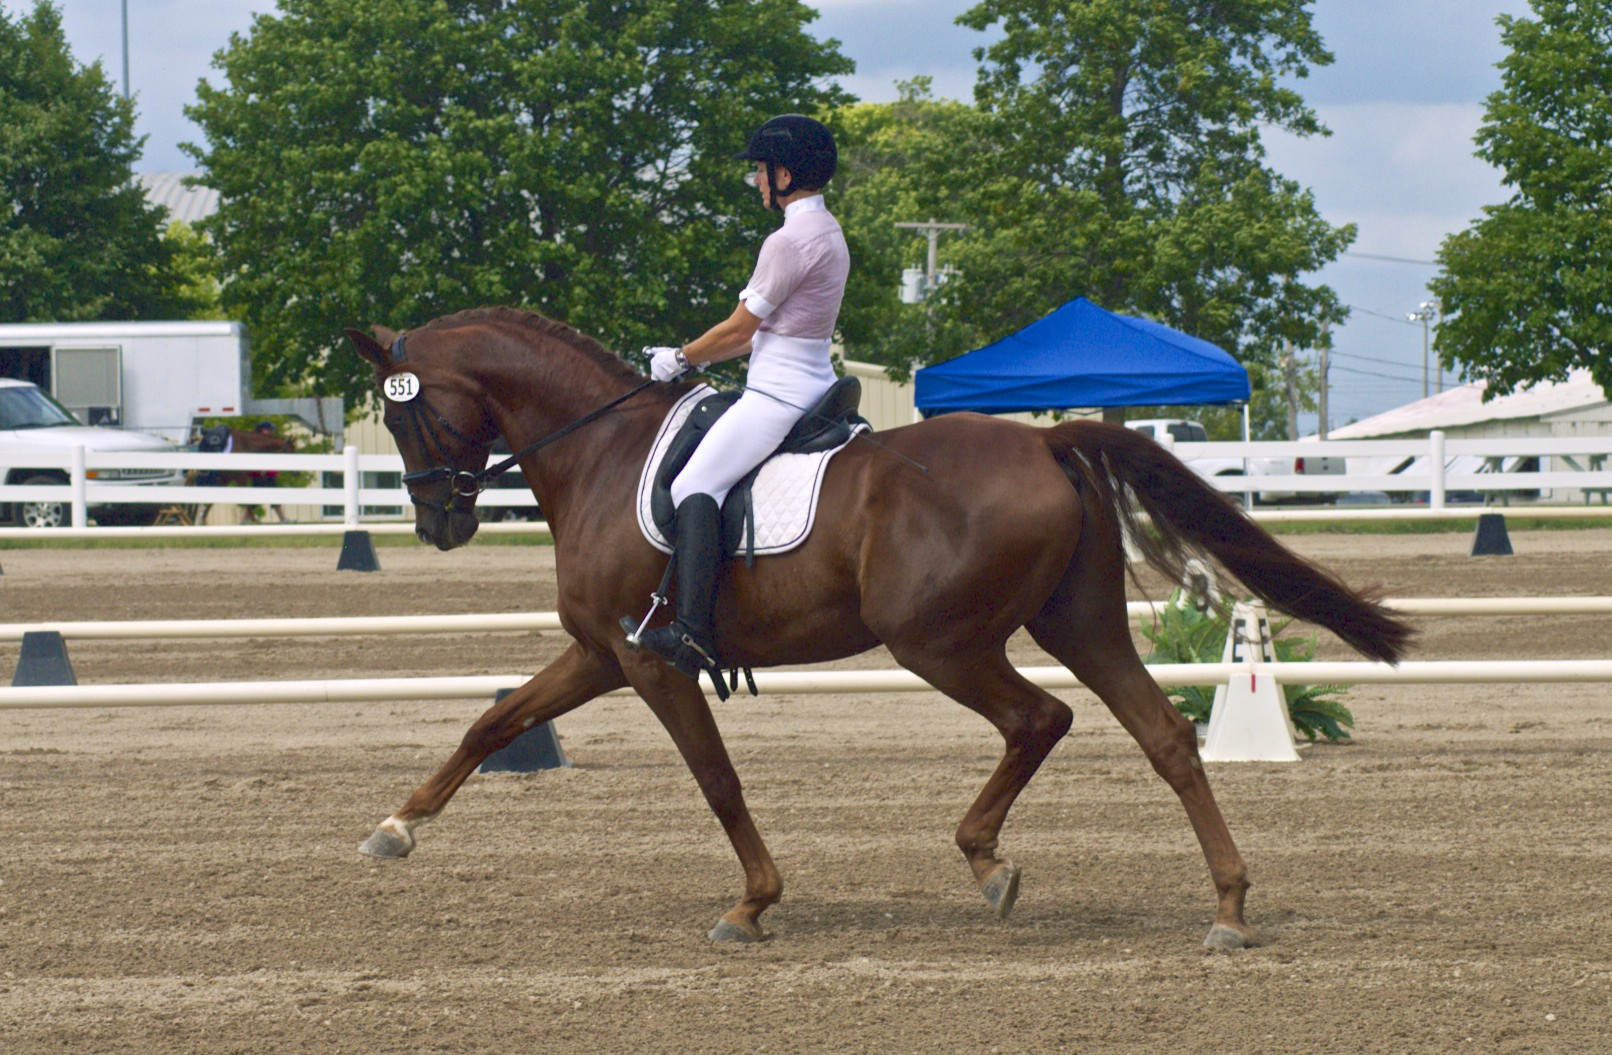 Rubico&Patti Blackmore won both Dover Medals as well as the Second Level highpoint